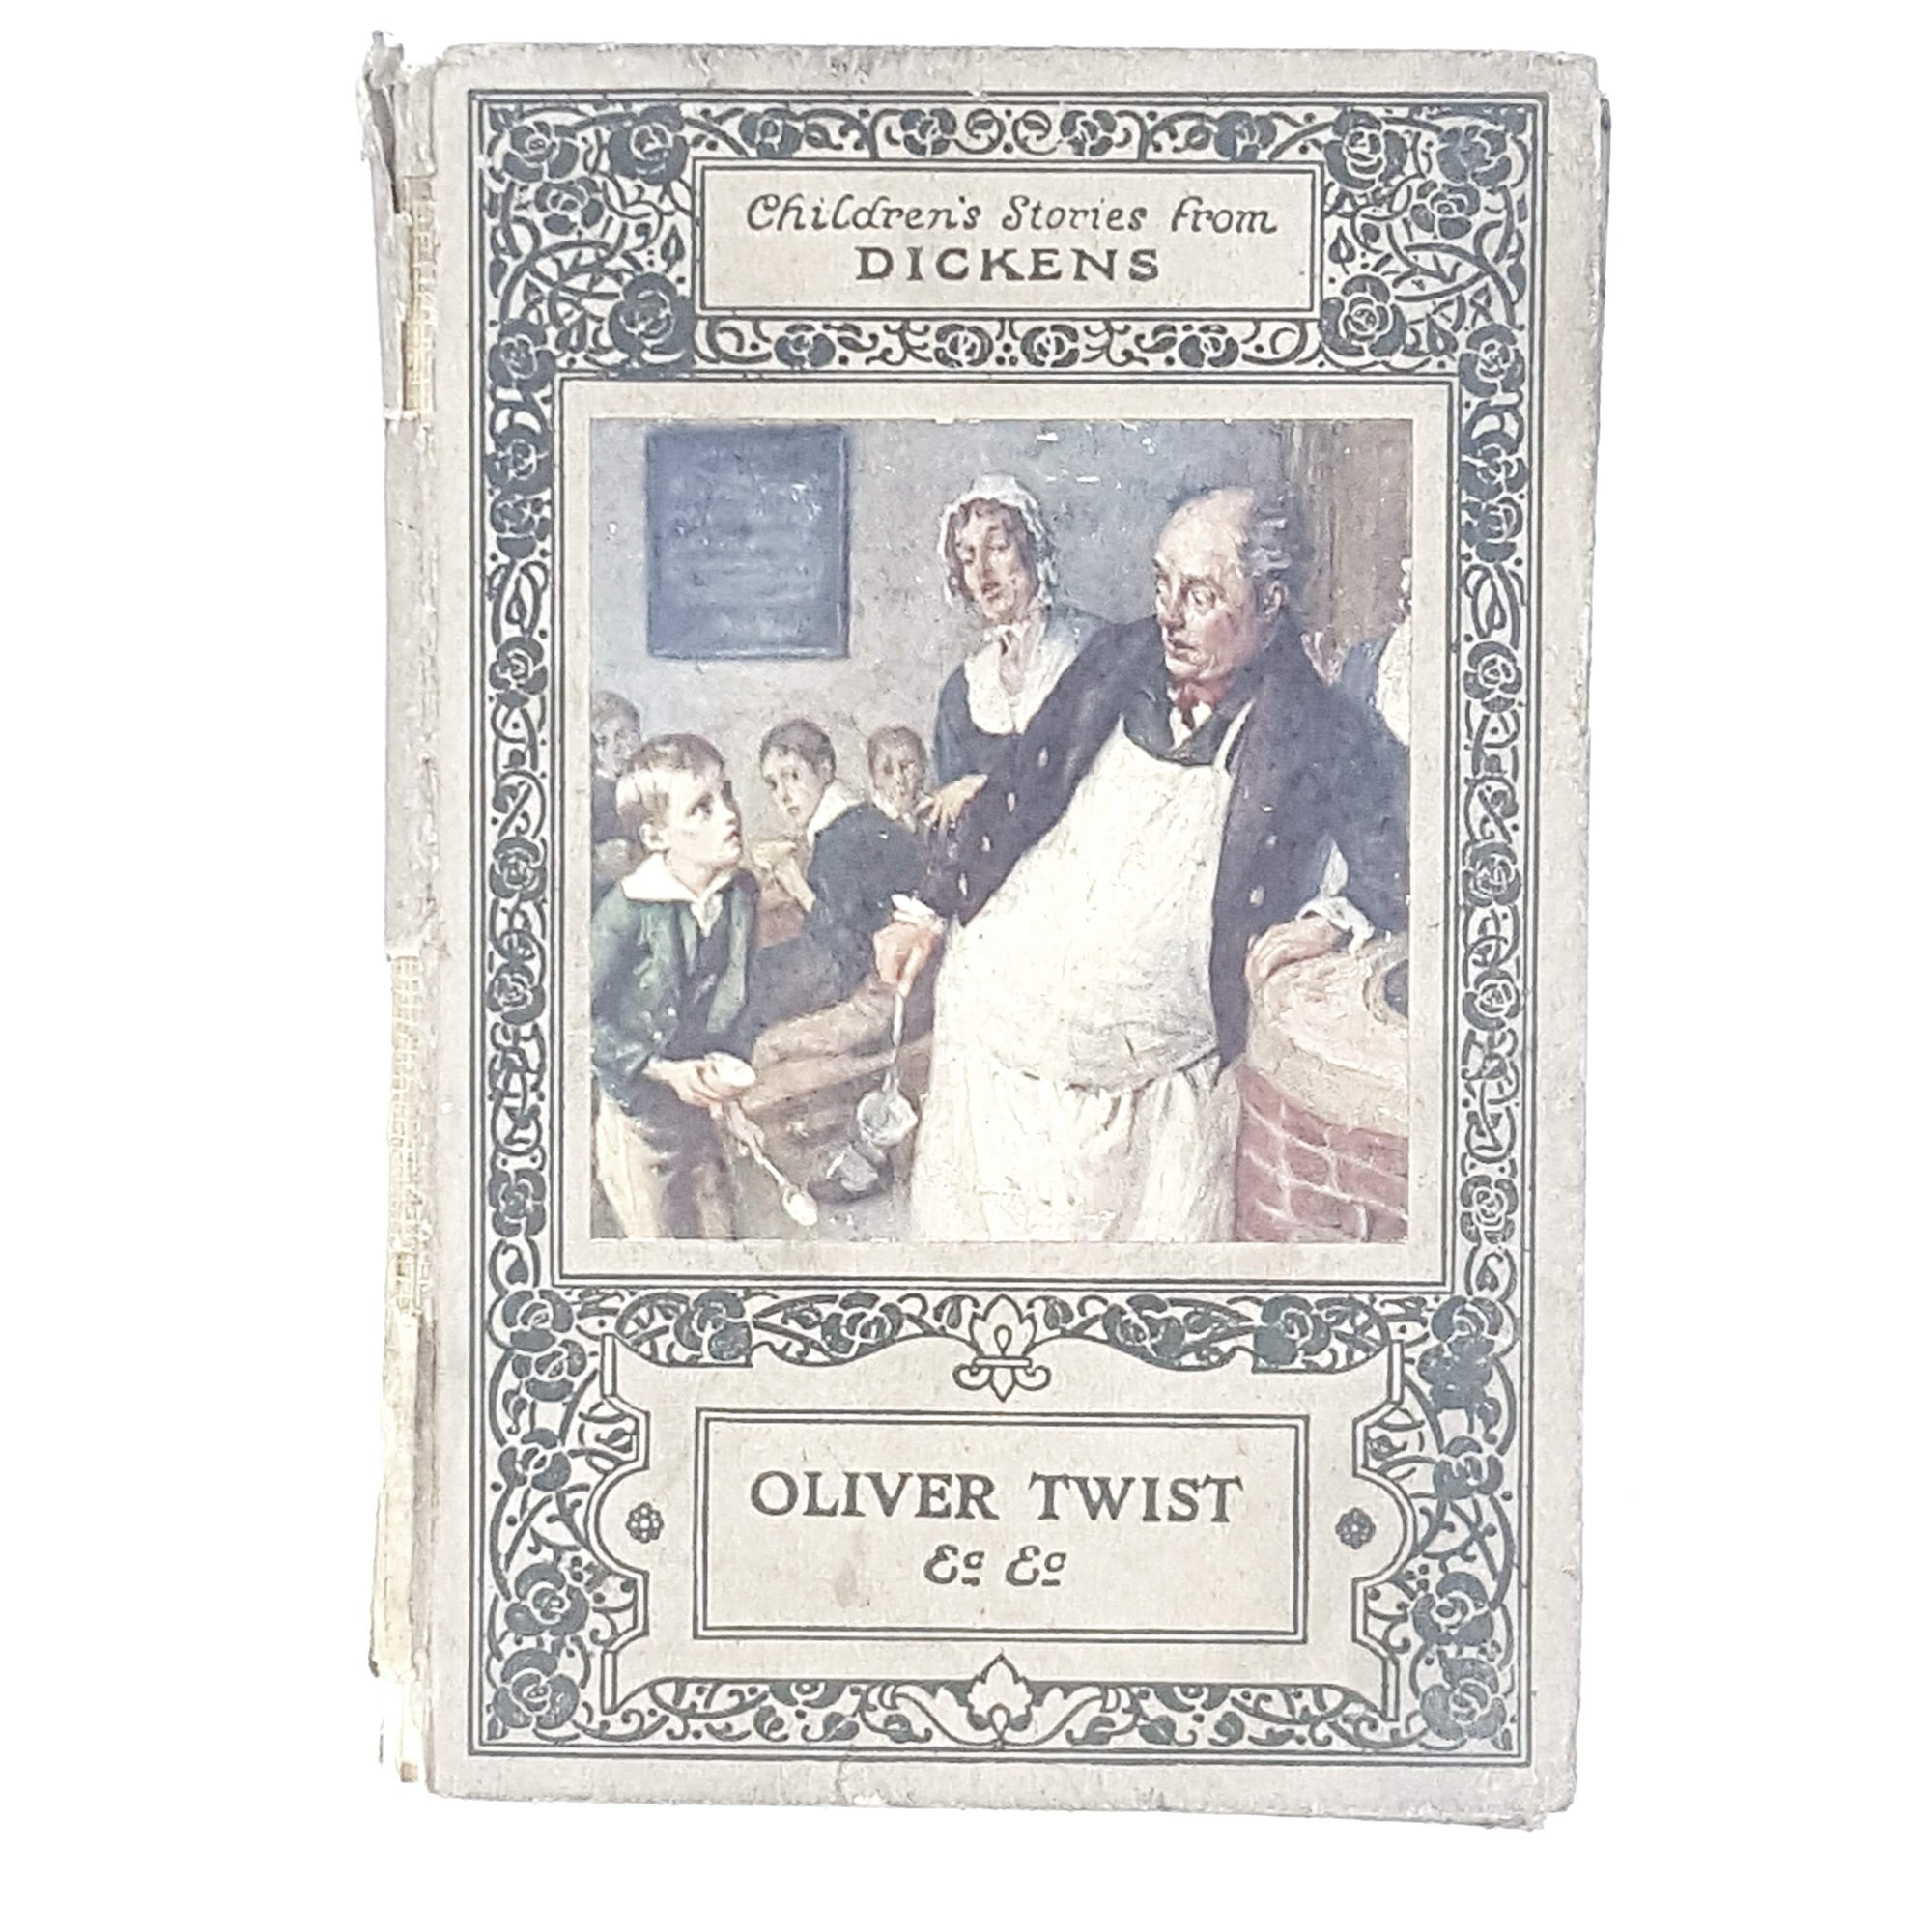 Charles Dickens's Children's Stories: Oliver Twist and The Blind Toymaker